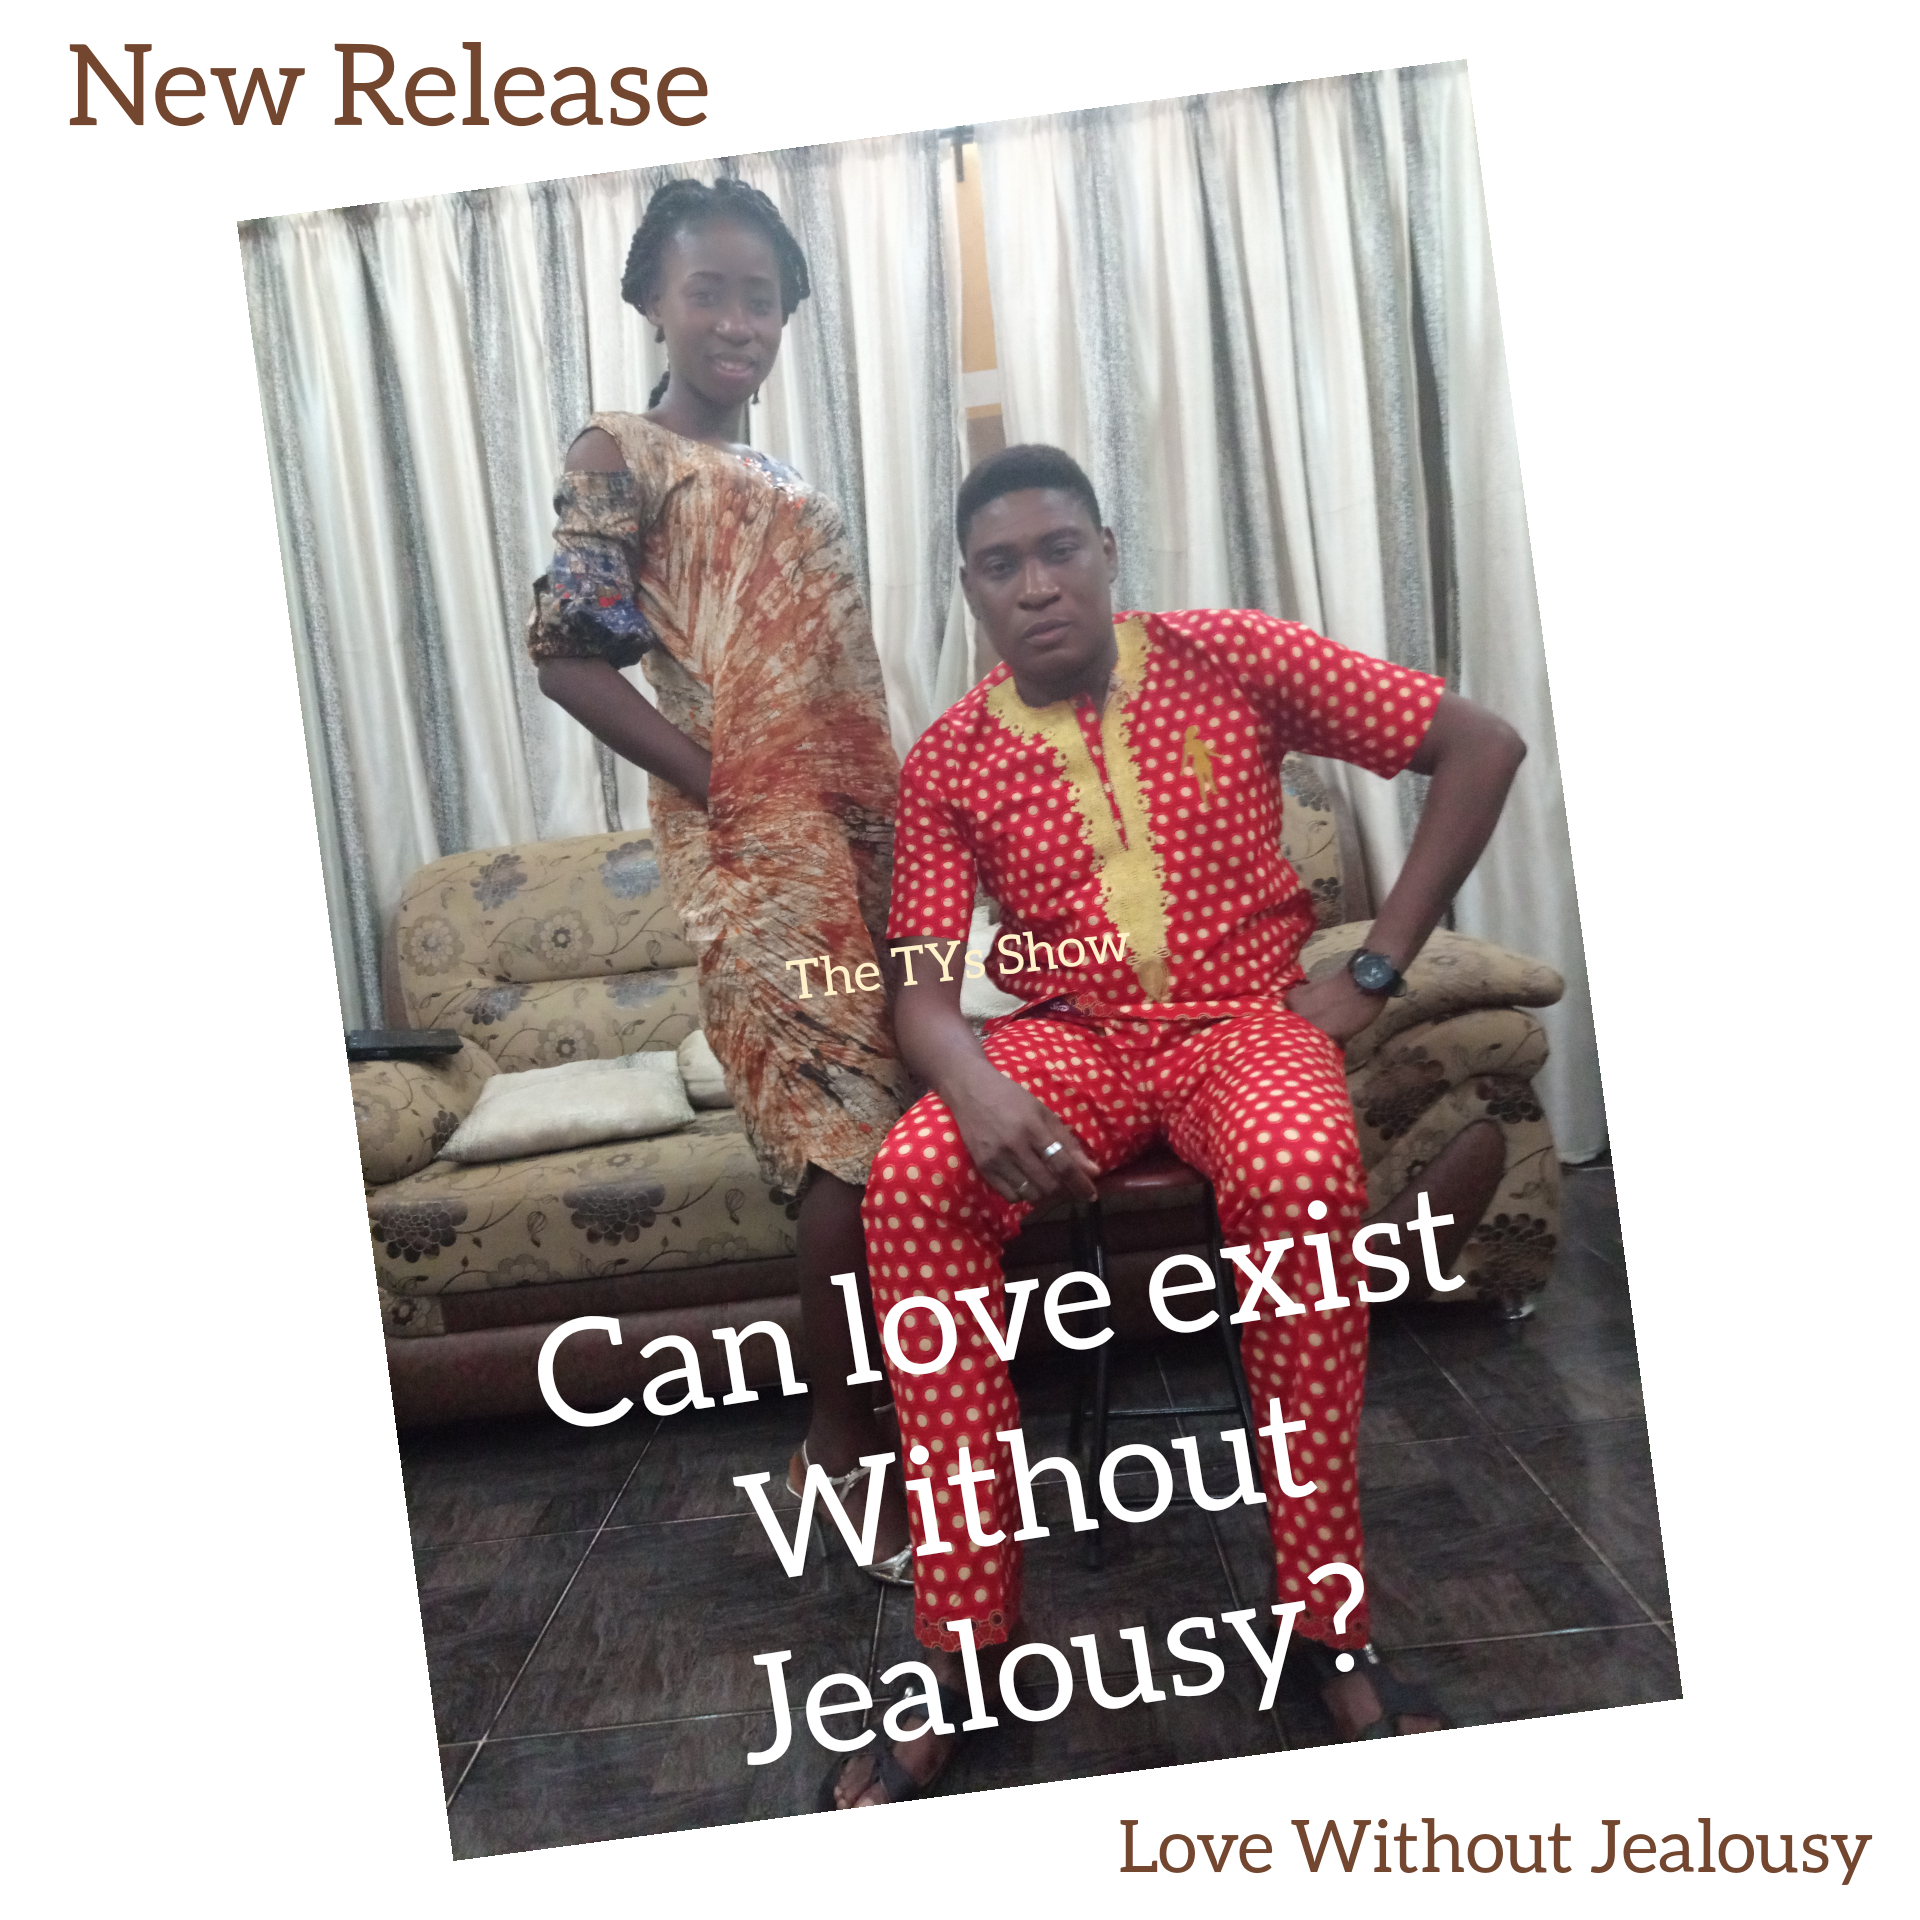 Love Without Jealousy